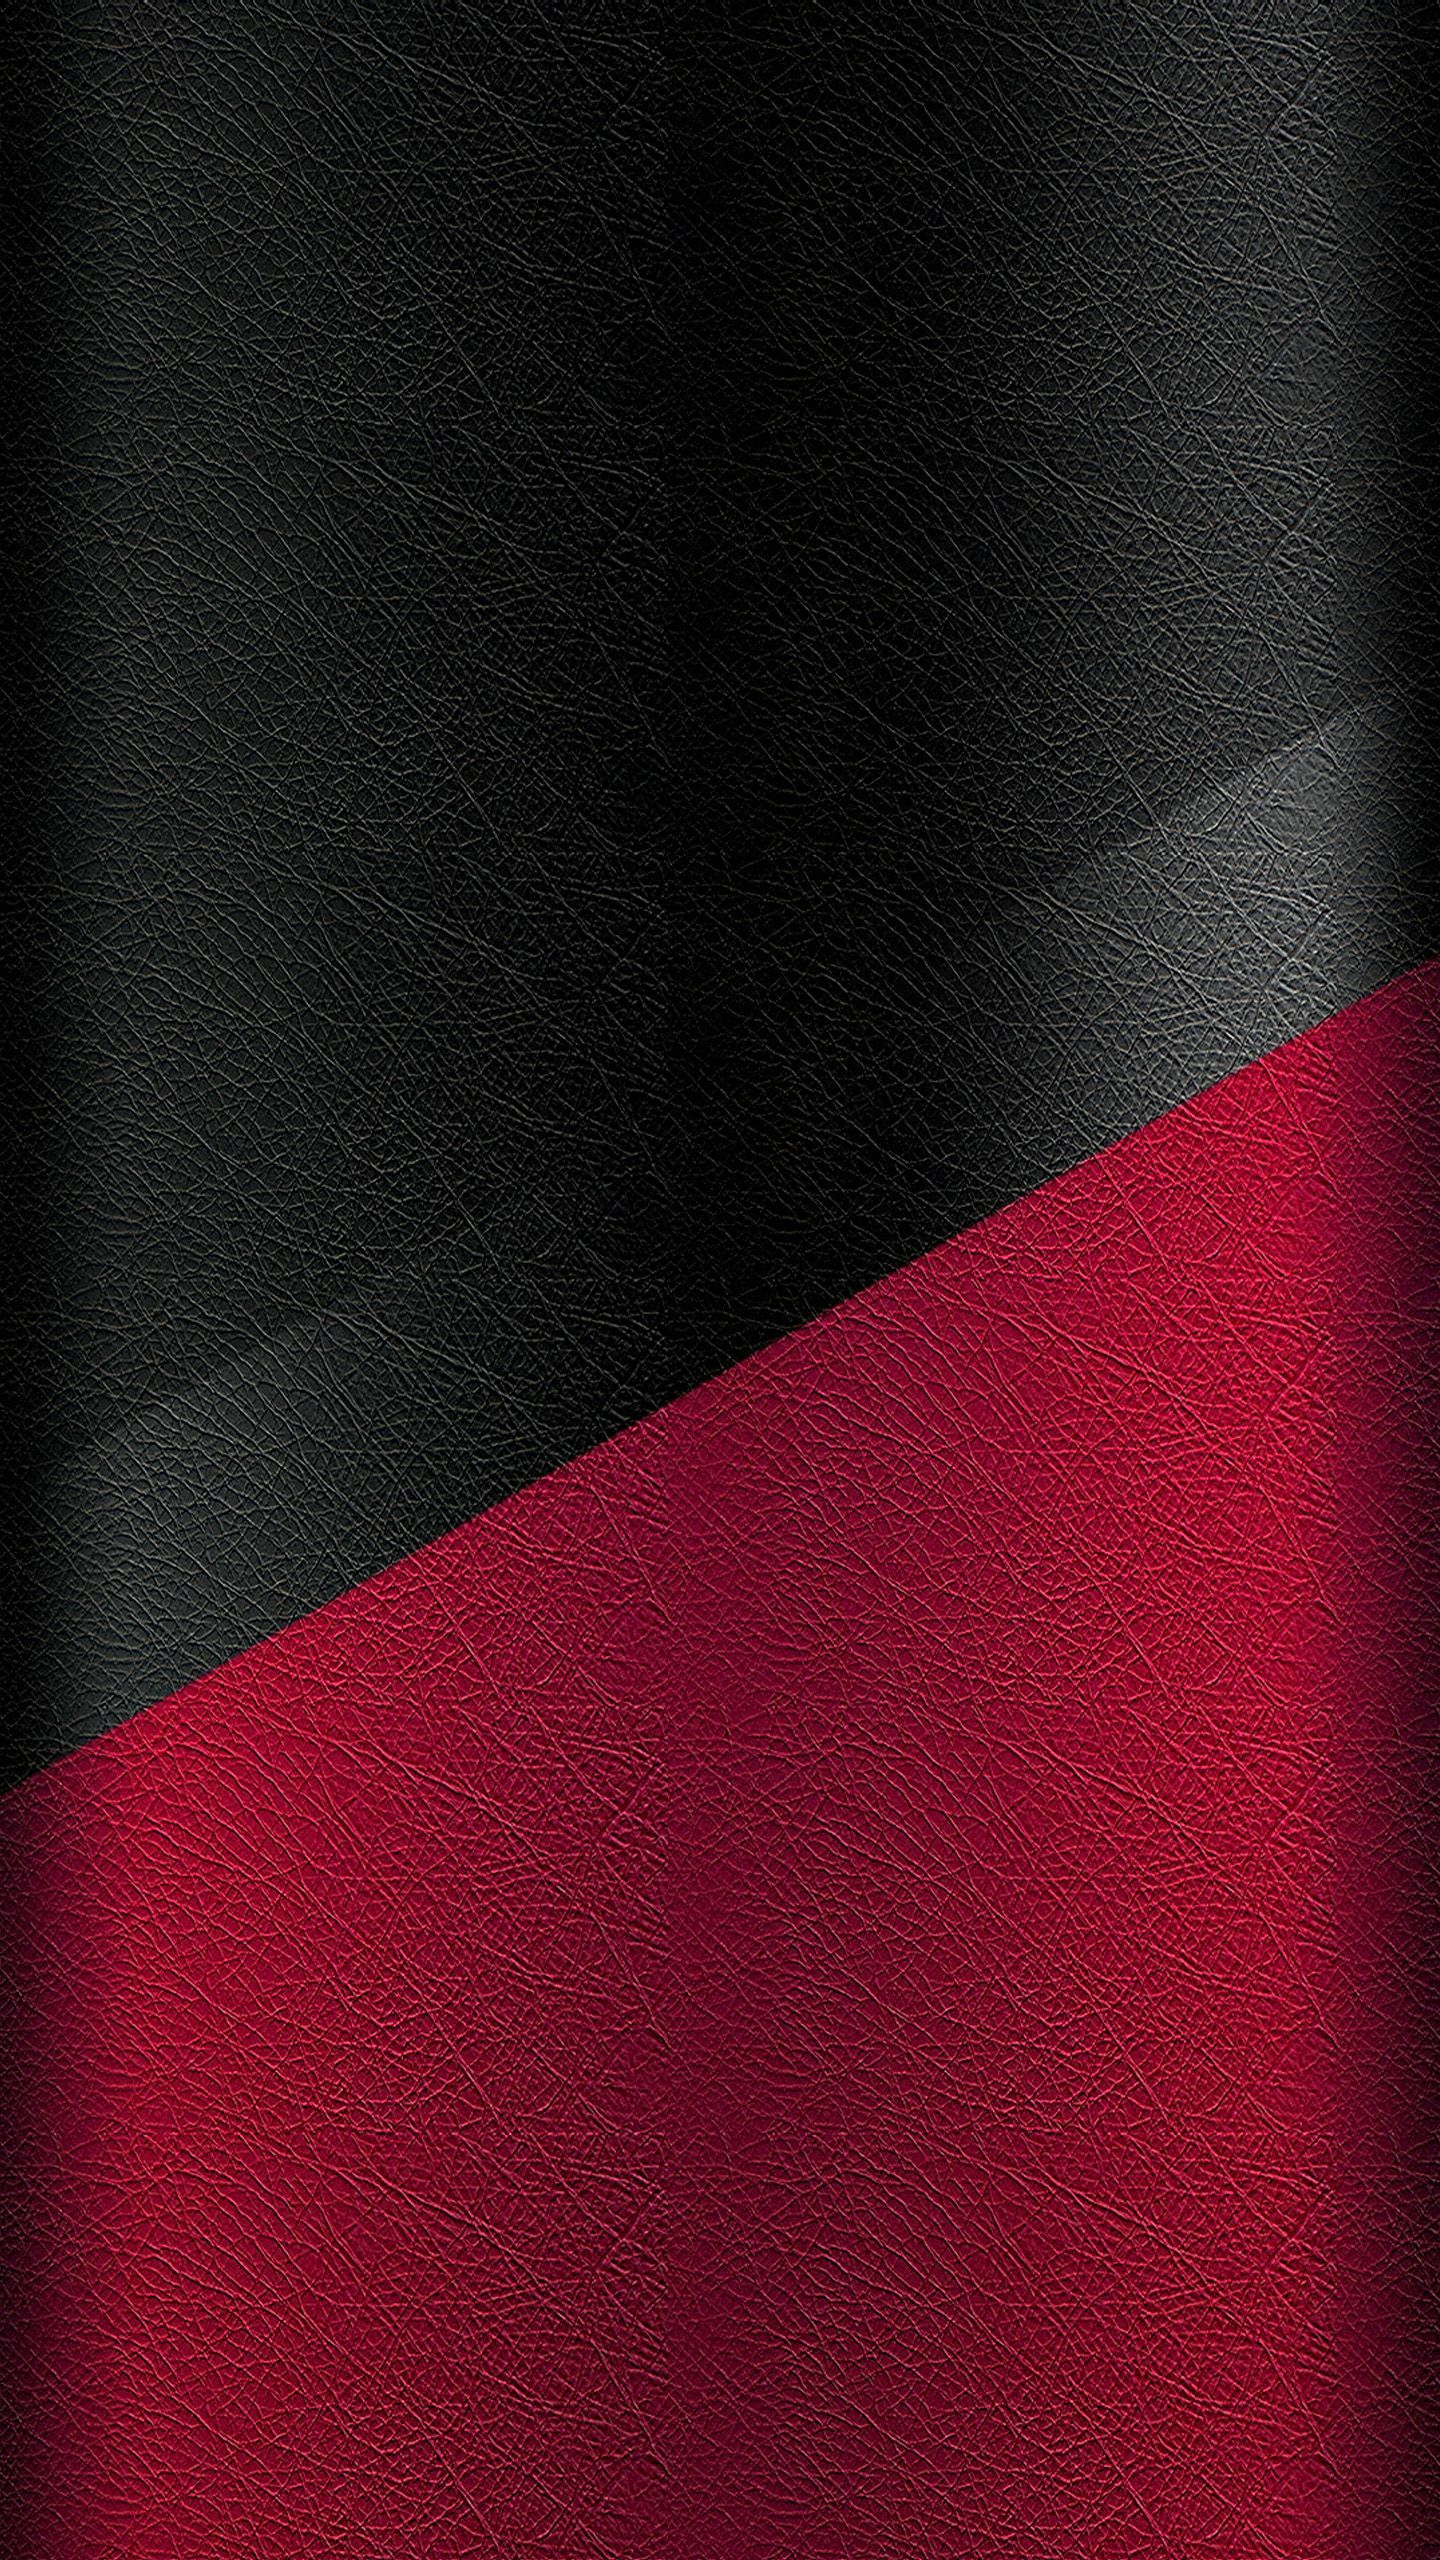 1440x2560 Dark S7 Edge Wallpaper 05 - Black and Red Leather Pattern ...